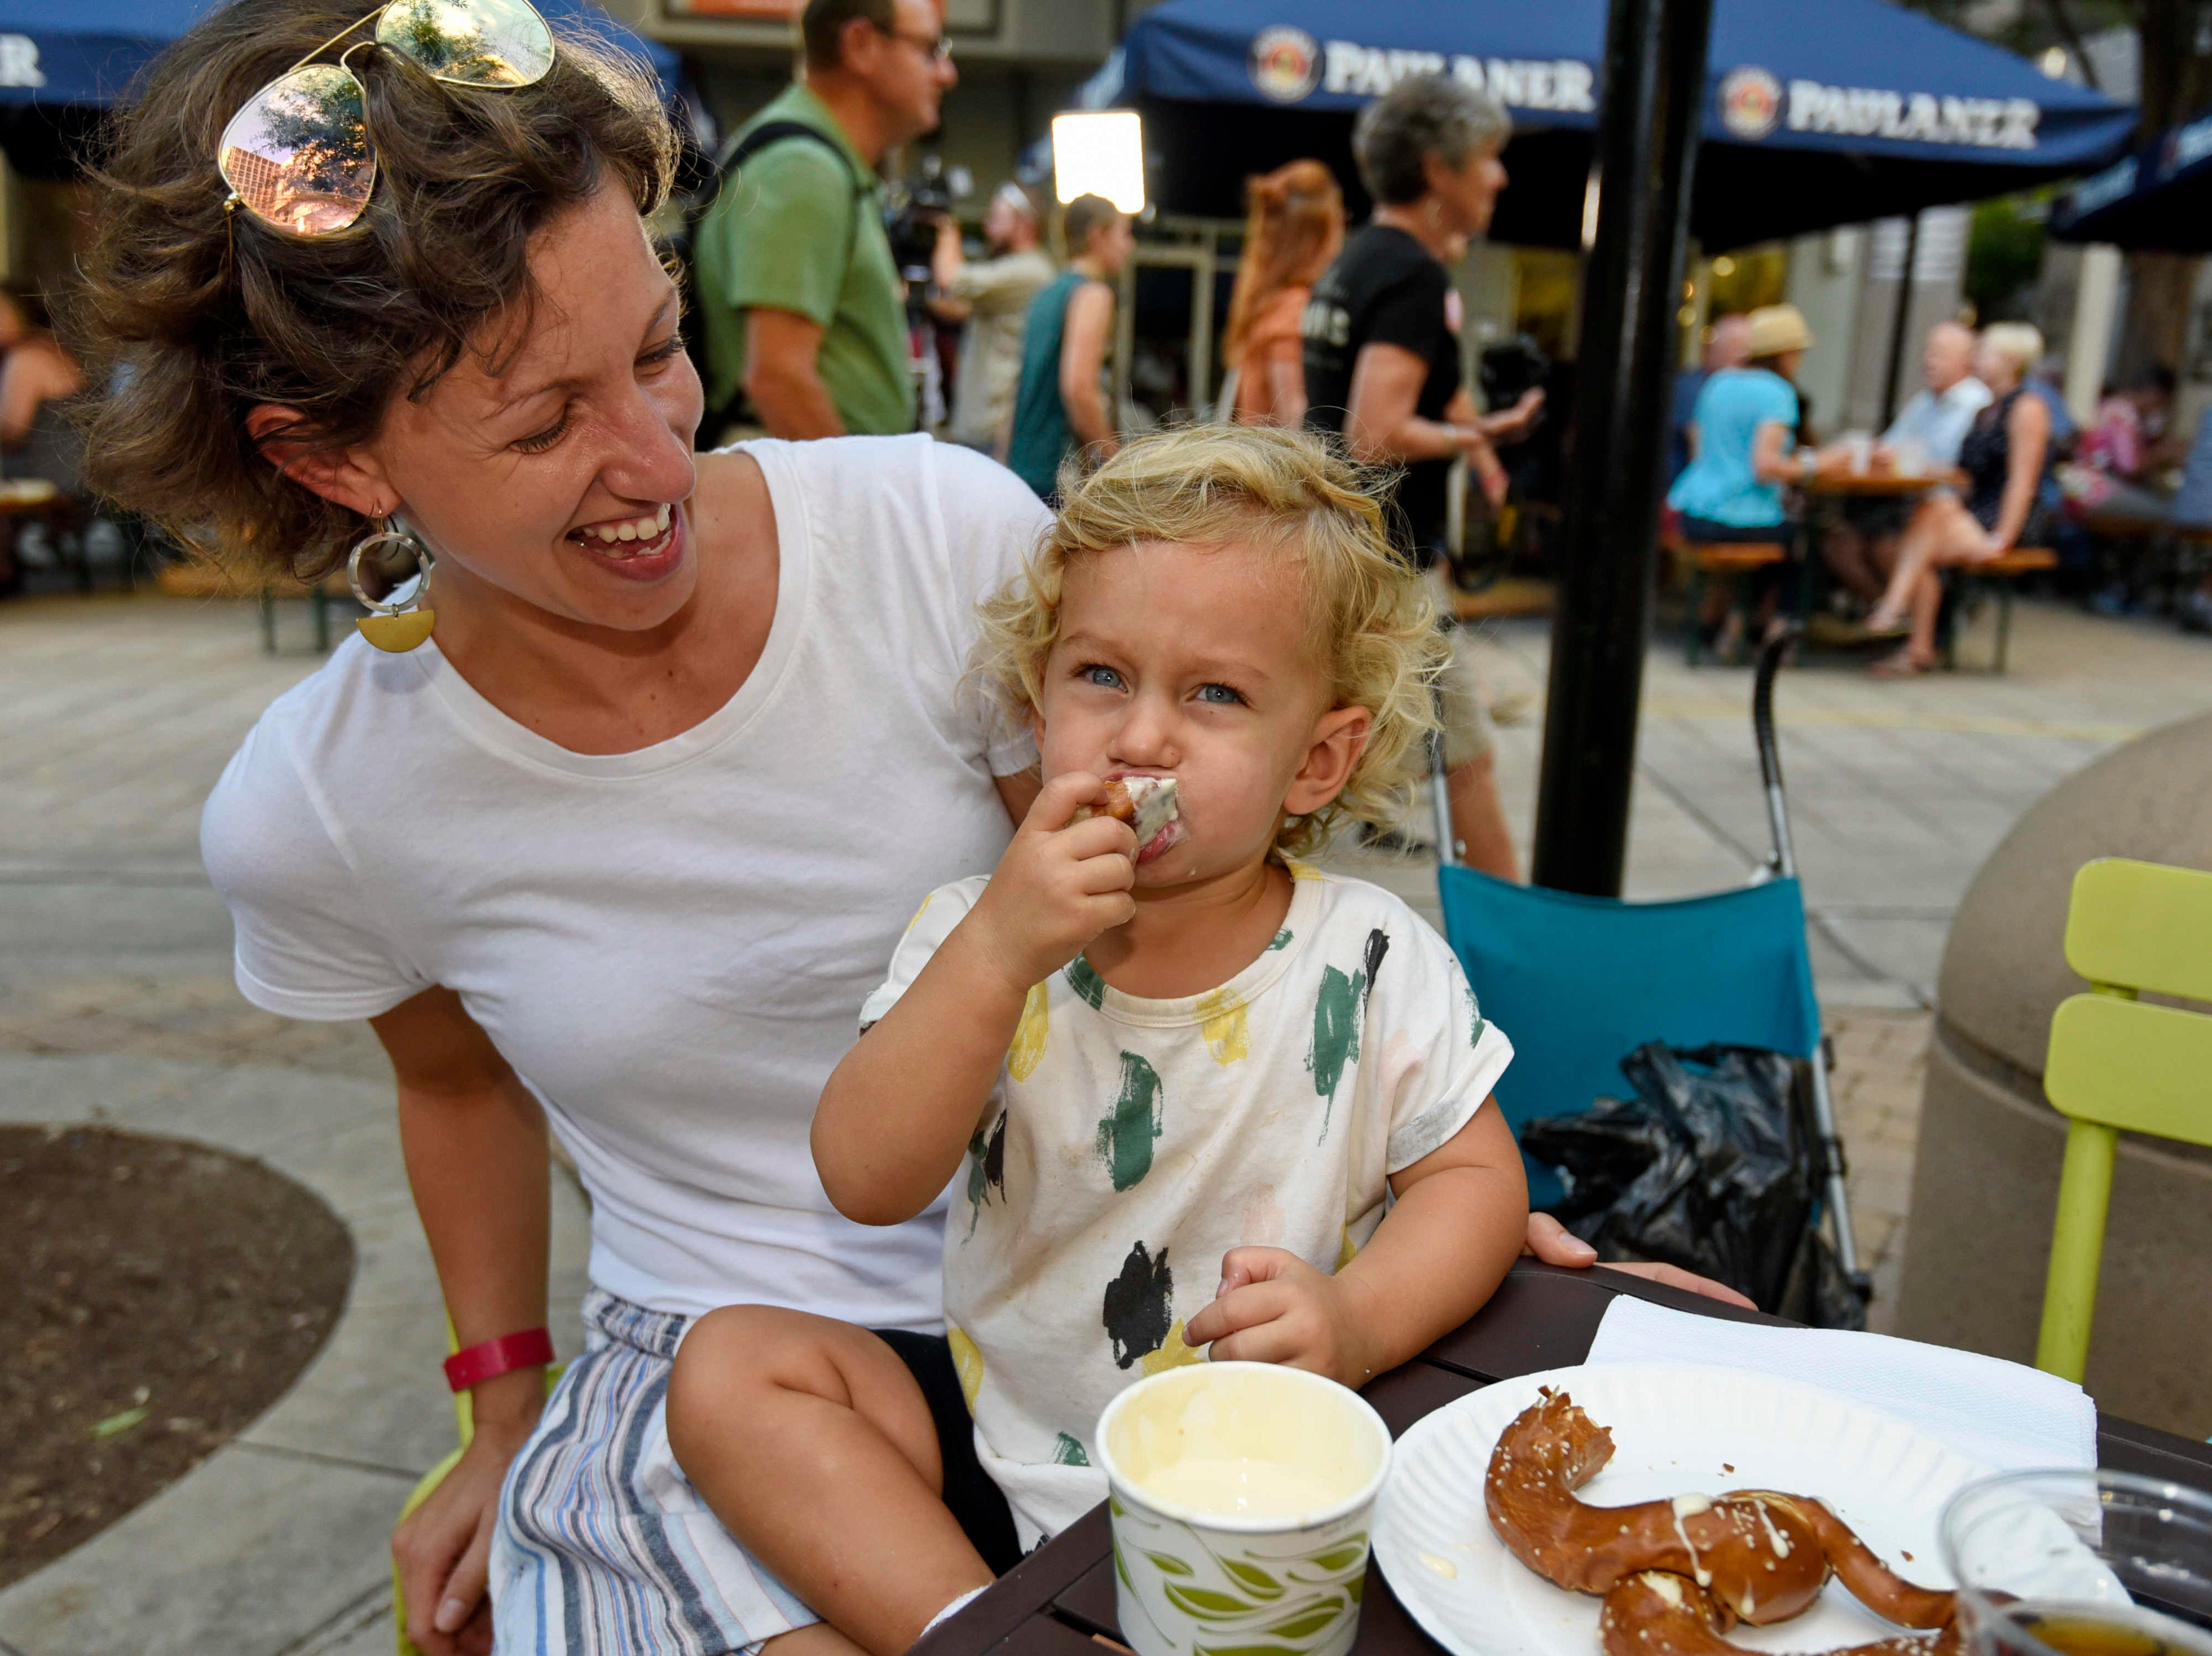 Cora Thomas, age 2, enjoys her pretzel and cheese with her mother Amamnda during Oktoberfest which kicked off at NOMA Square in downtown Greenville Thursday, Oct. 4,  2018.